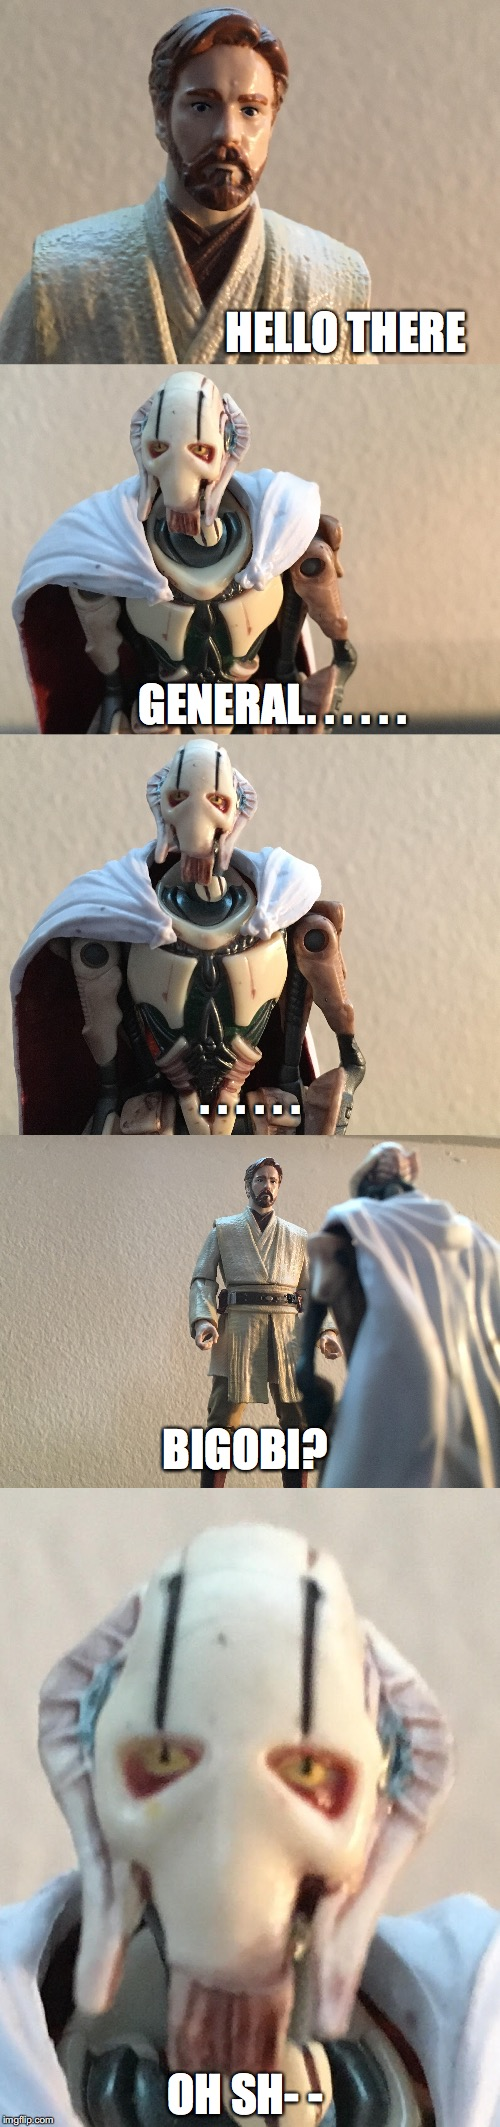 Obi-Wan's Secret Weapon | HELLO THERE OH SH- - GENERAL. . . . . . . . . . . . BIGOBI? | image tagged in star wars prequels,revenge of the sith,hello there,general kenobi hello there,obi wan kenobi,general grievous | made w/ Imgflip meme maker